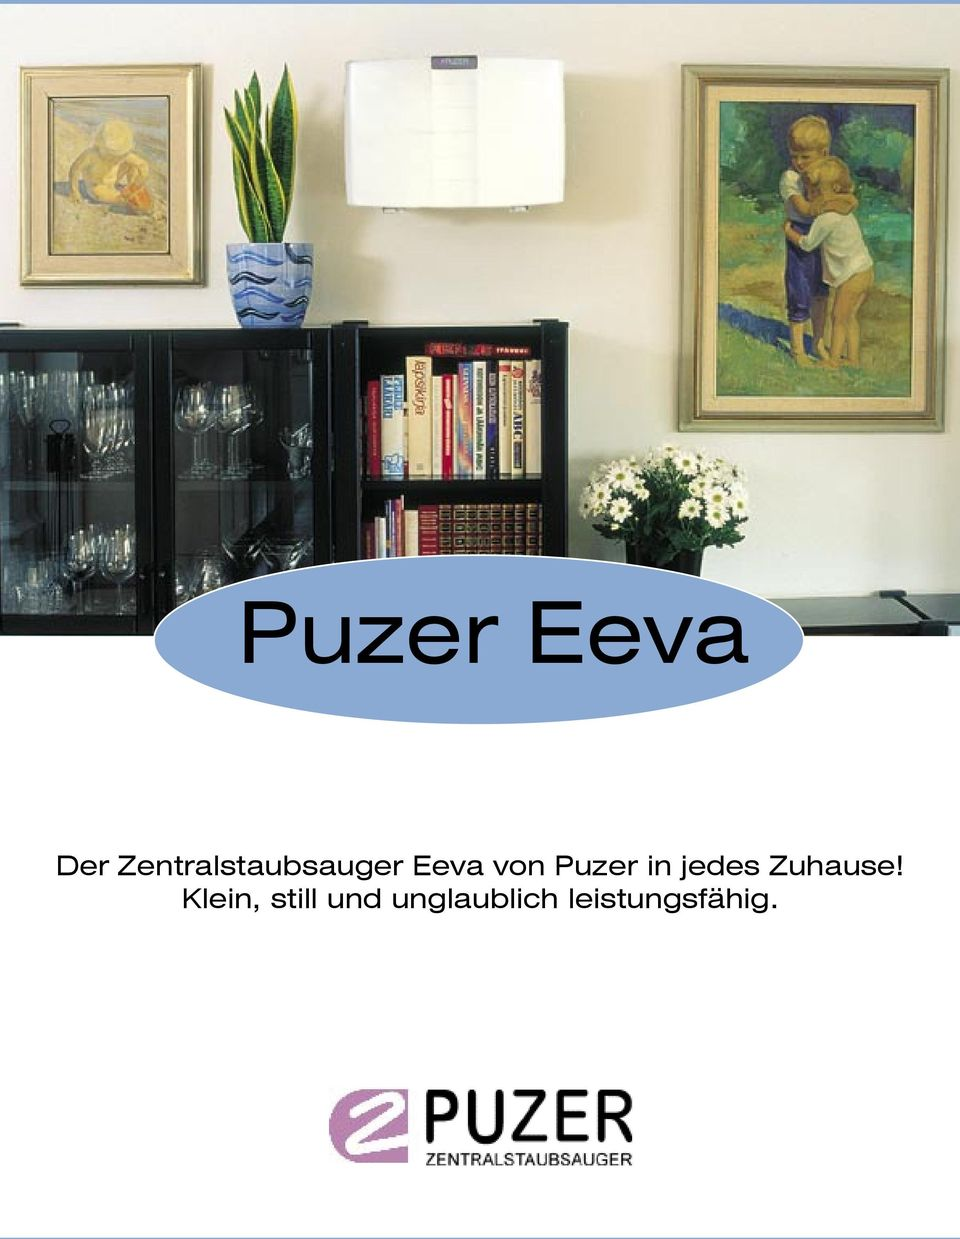 Puzer in jedes Zuhause!